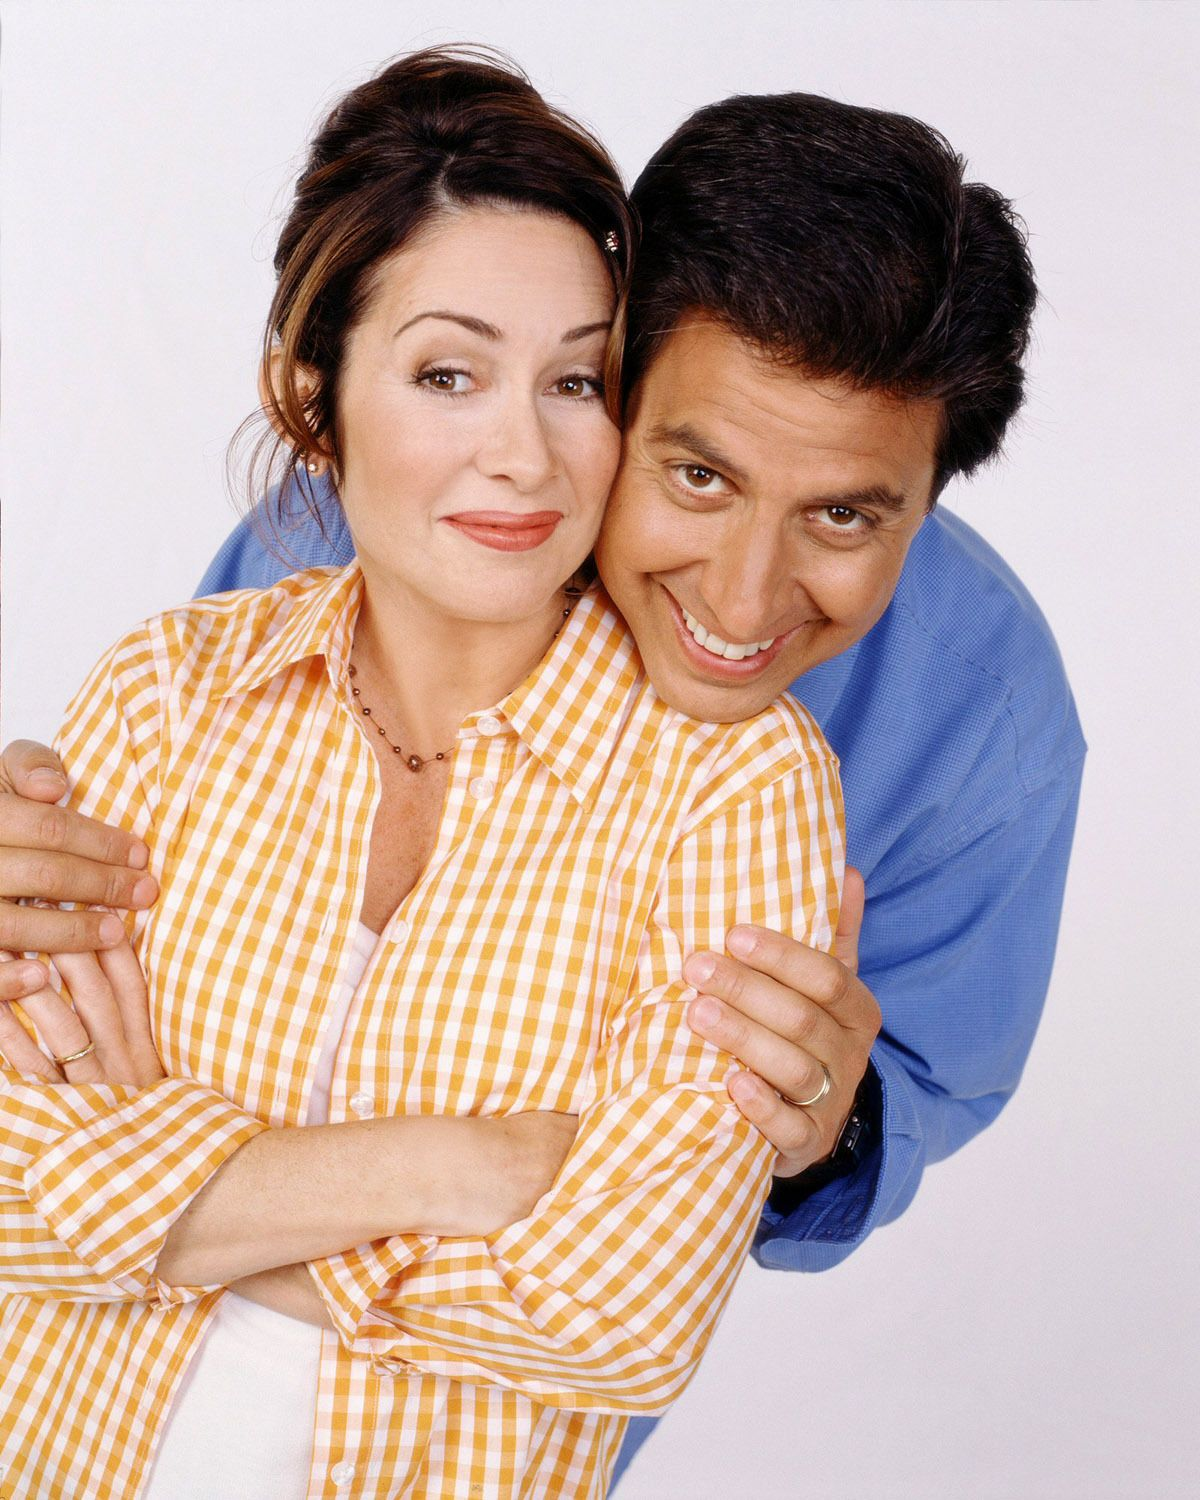 everybody loves raymond ray meets debra Everybody loves raymond - ray's parents argue by parenteffectiveness 2:24 play next everybody loves raymond - debra impersonates ray by sultanchamp 2:42.